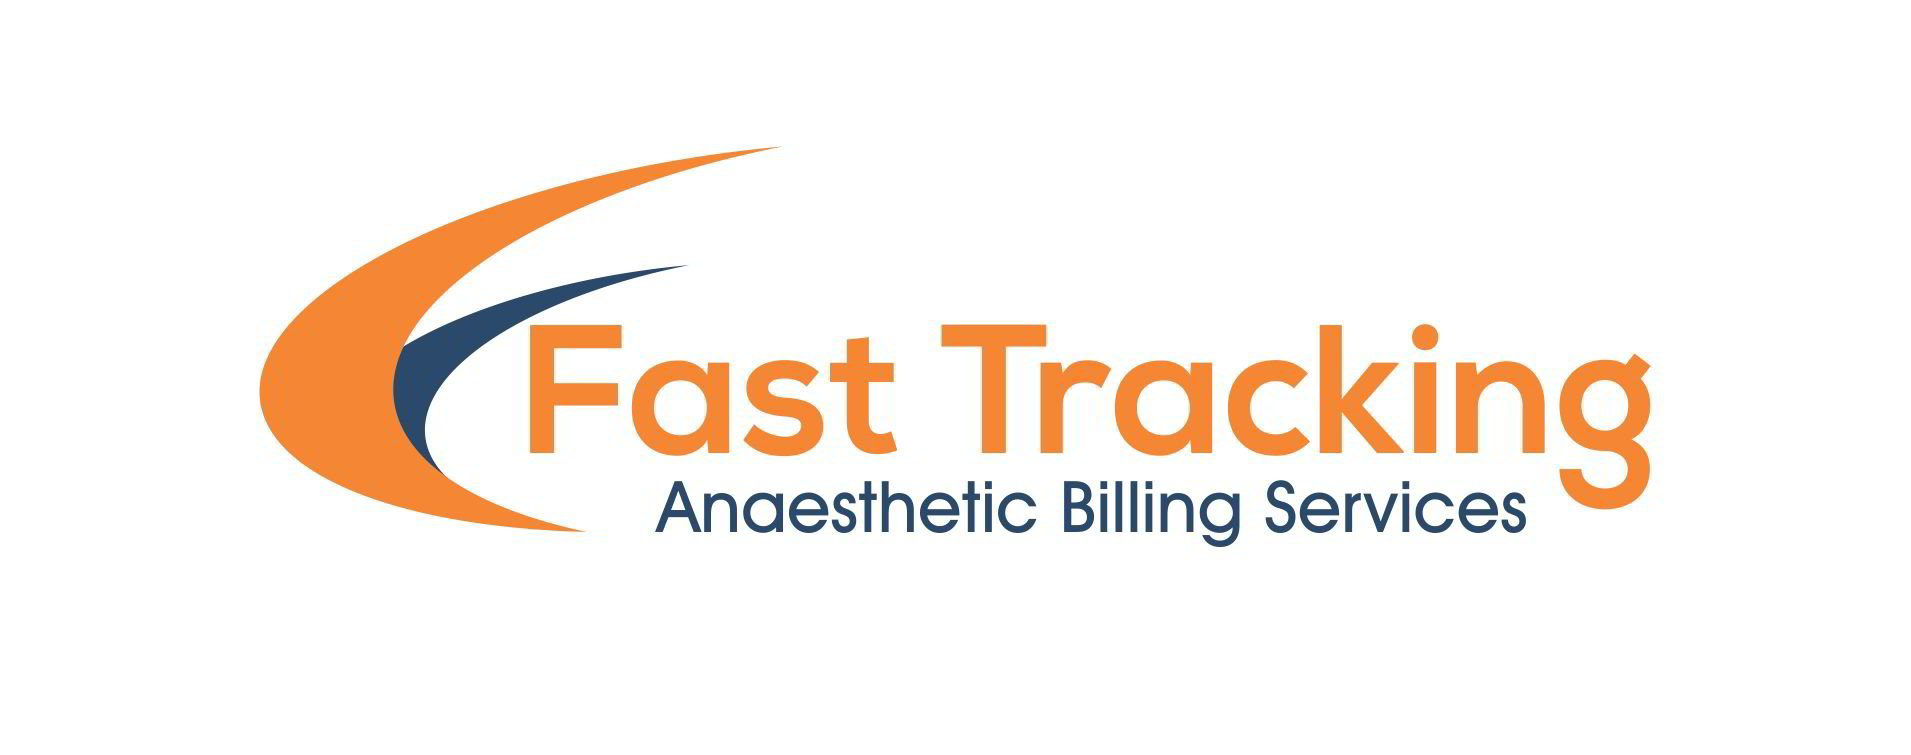 Anaesthetic Billing